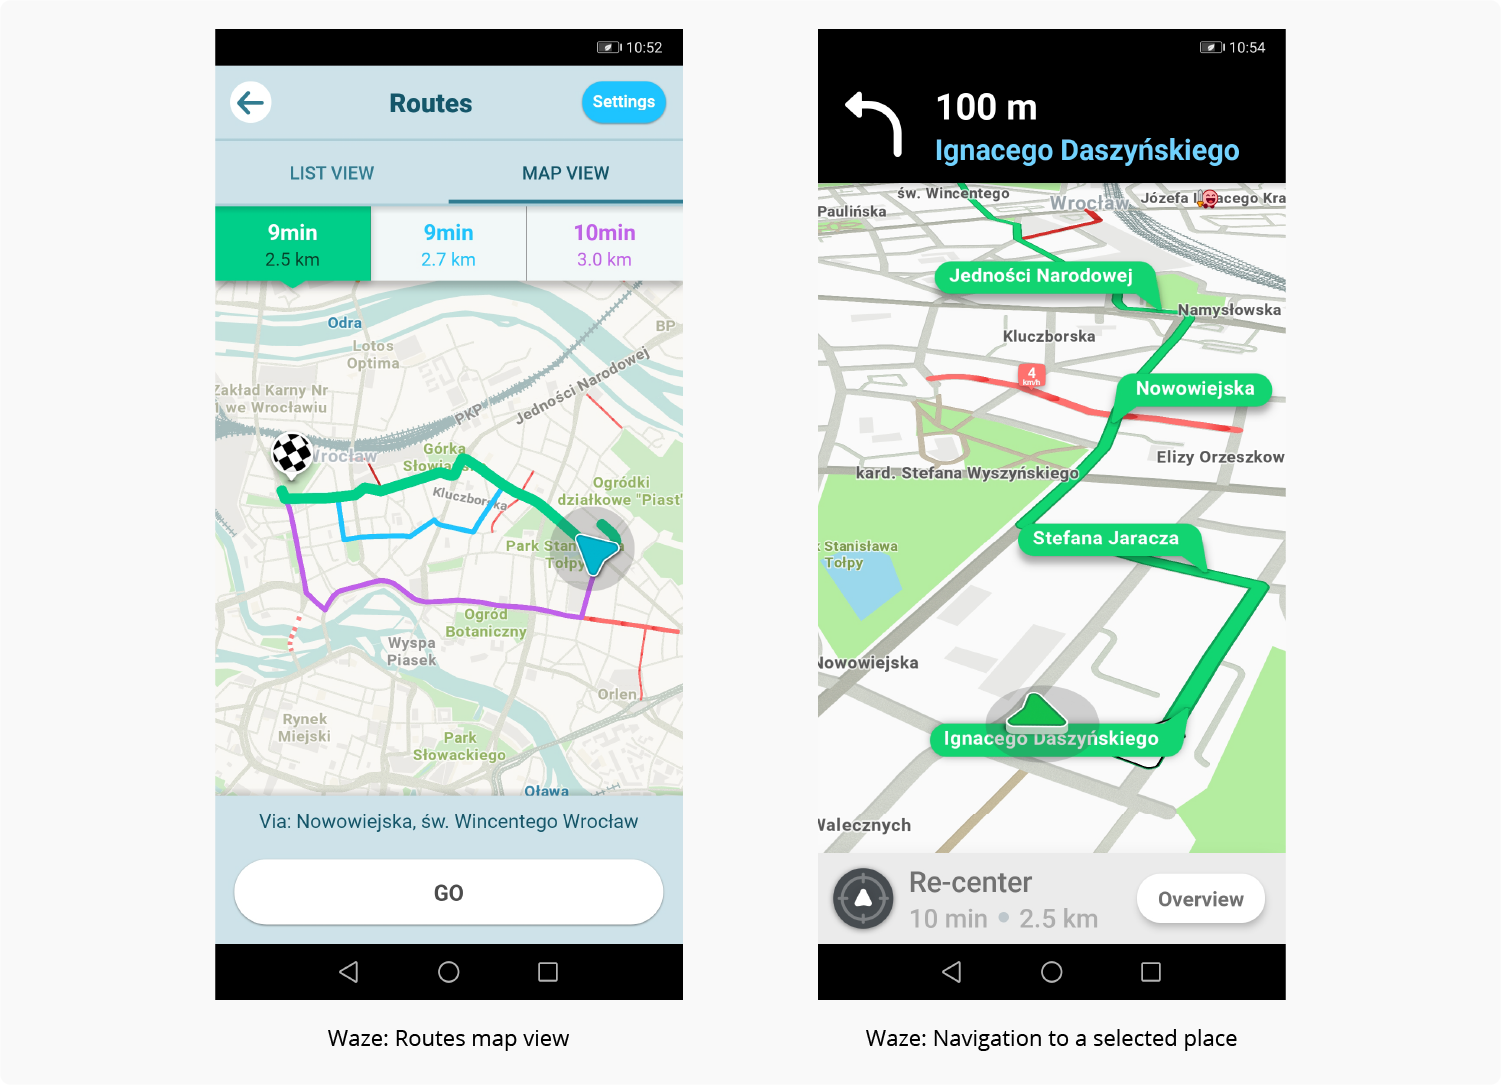 how to develop an app with geolocation – Waze screens exmaple